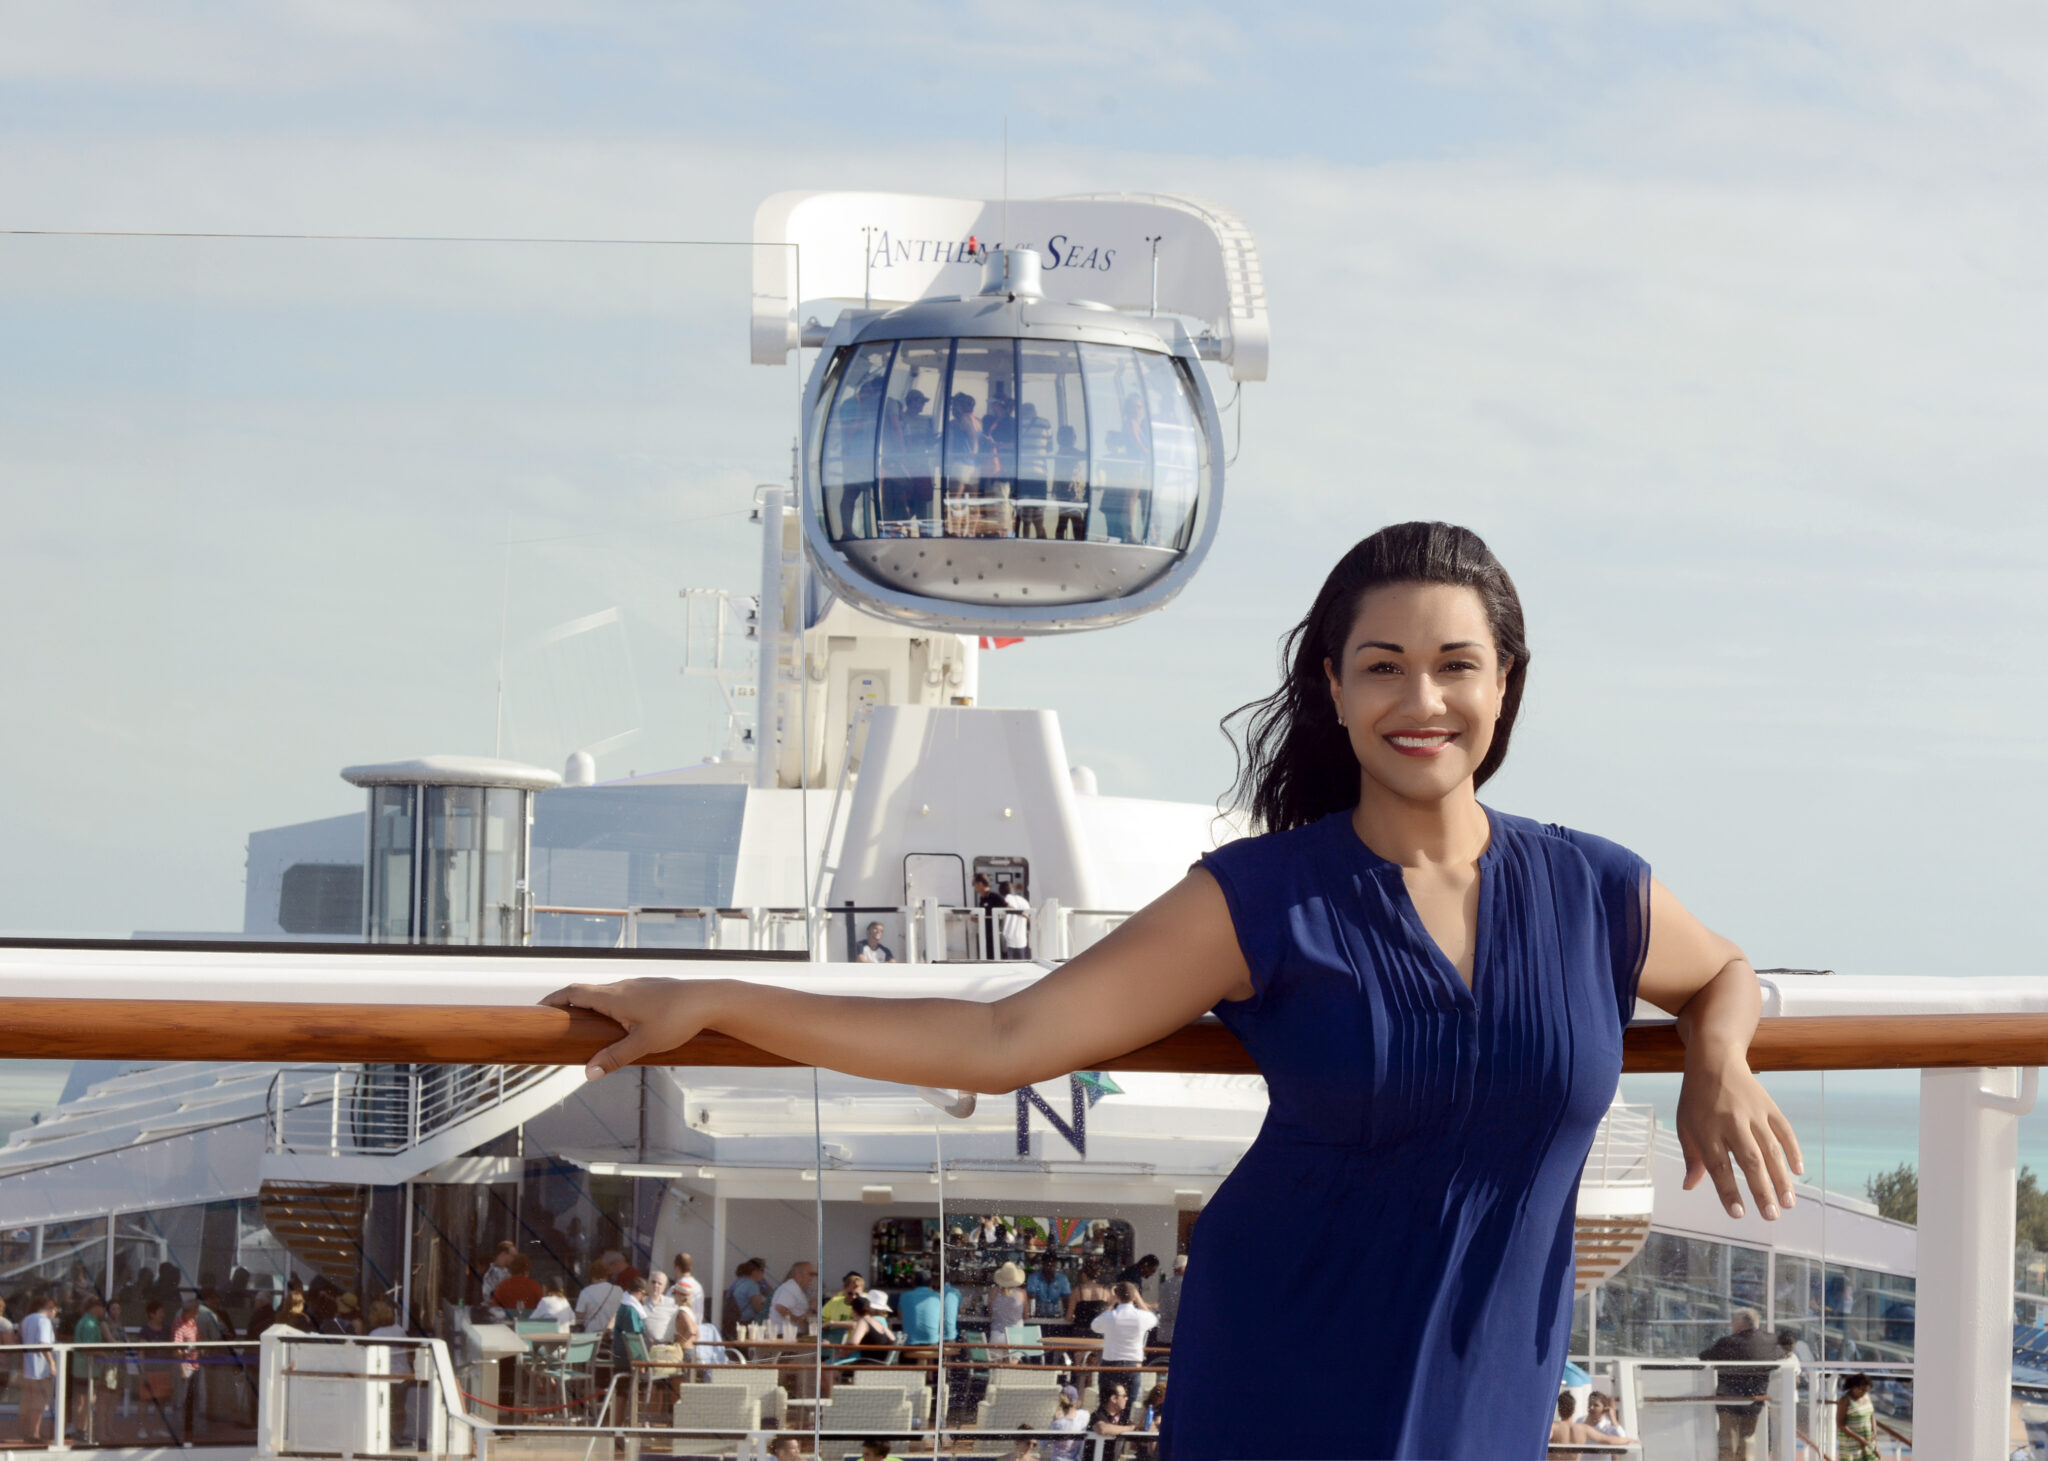 Swoon Talent - On-camera travel expert Sandra McLemore aboard a cruise ship